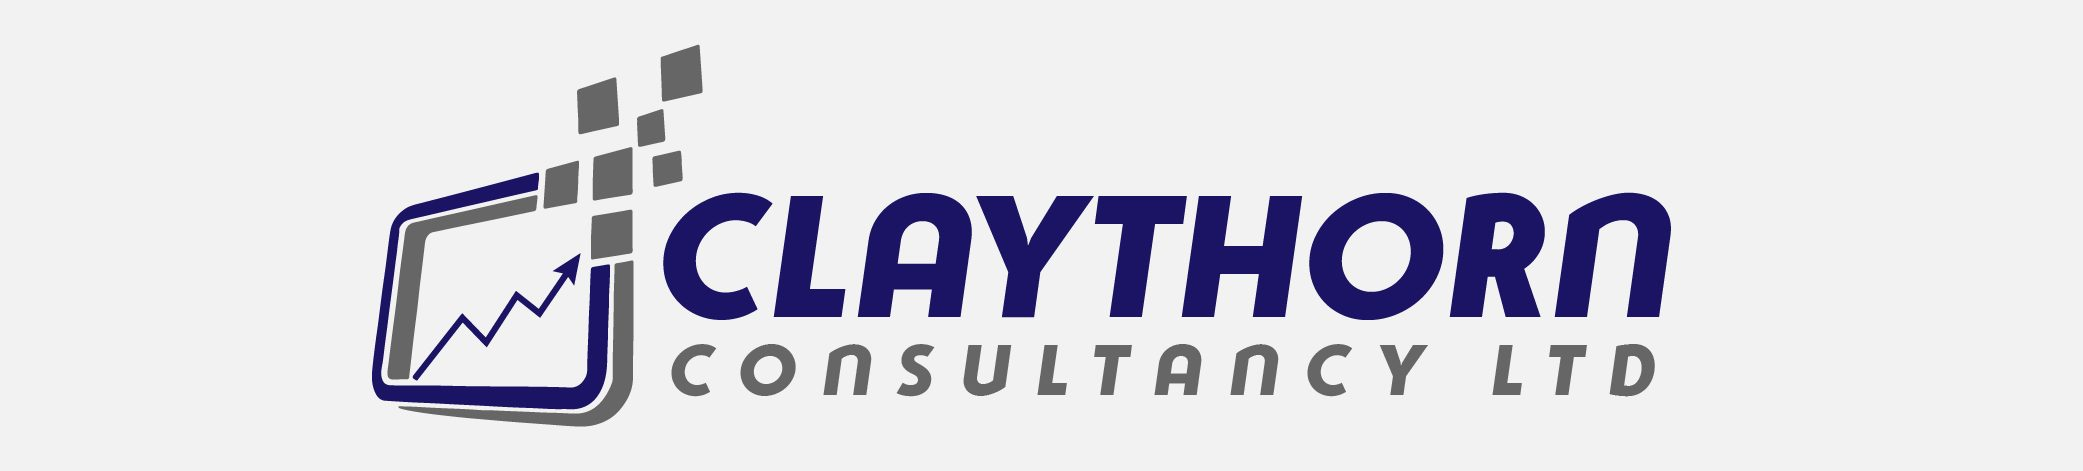 Claythorn Consultancy Ltd